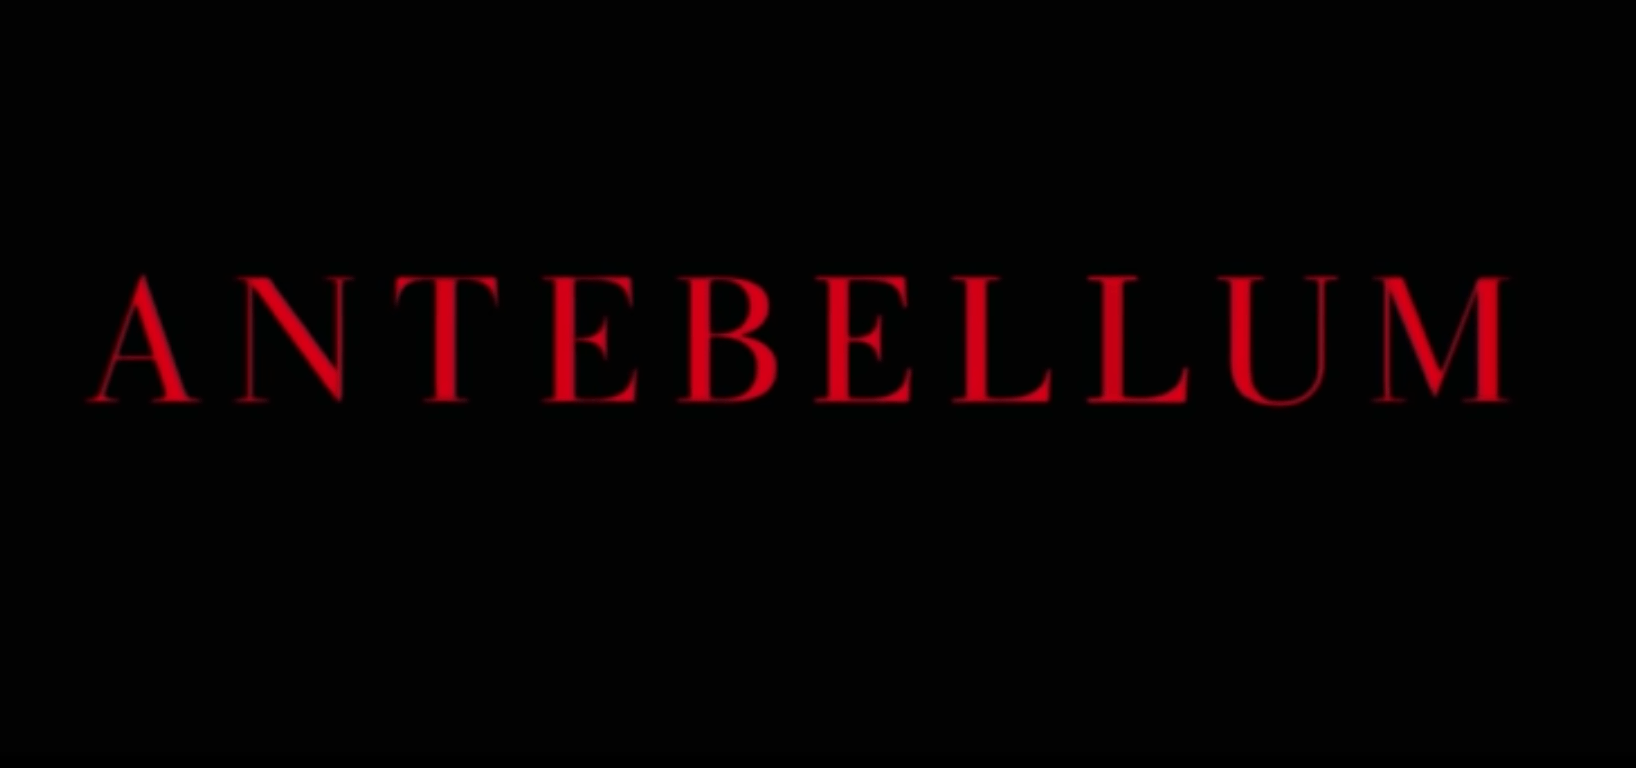 A black screen with the title Antebellum written in red